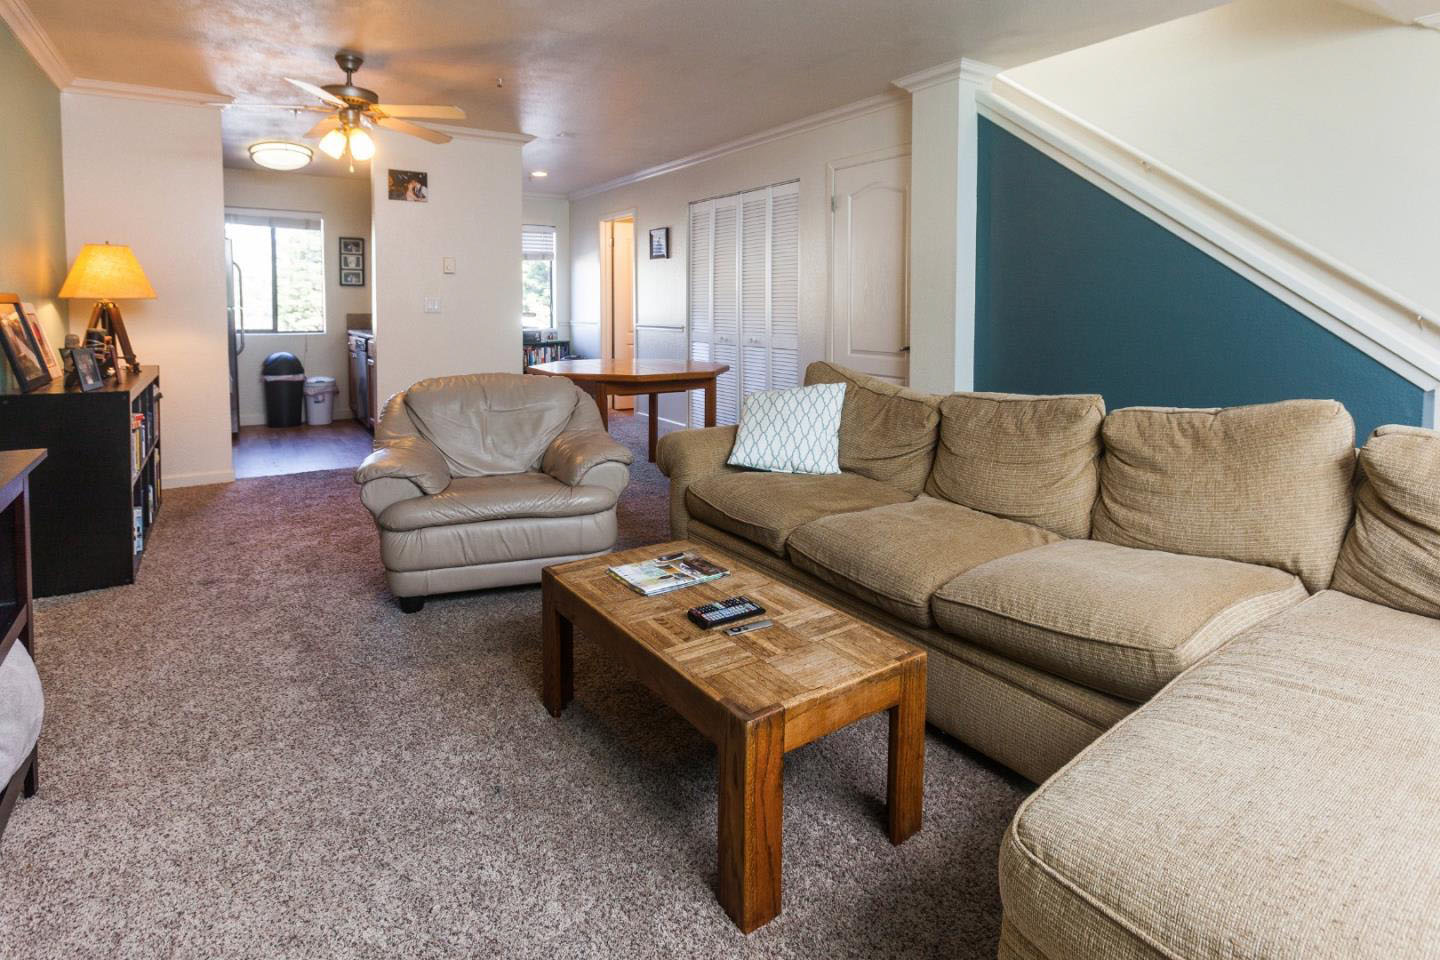 2 Bedroom Home In Westside Sunny Deck & Laundry Room